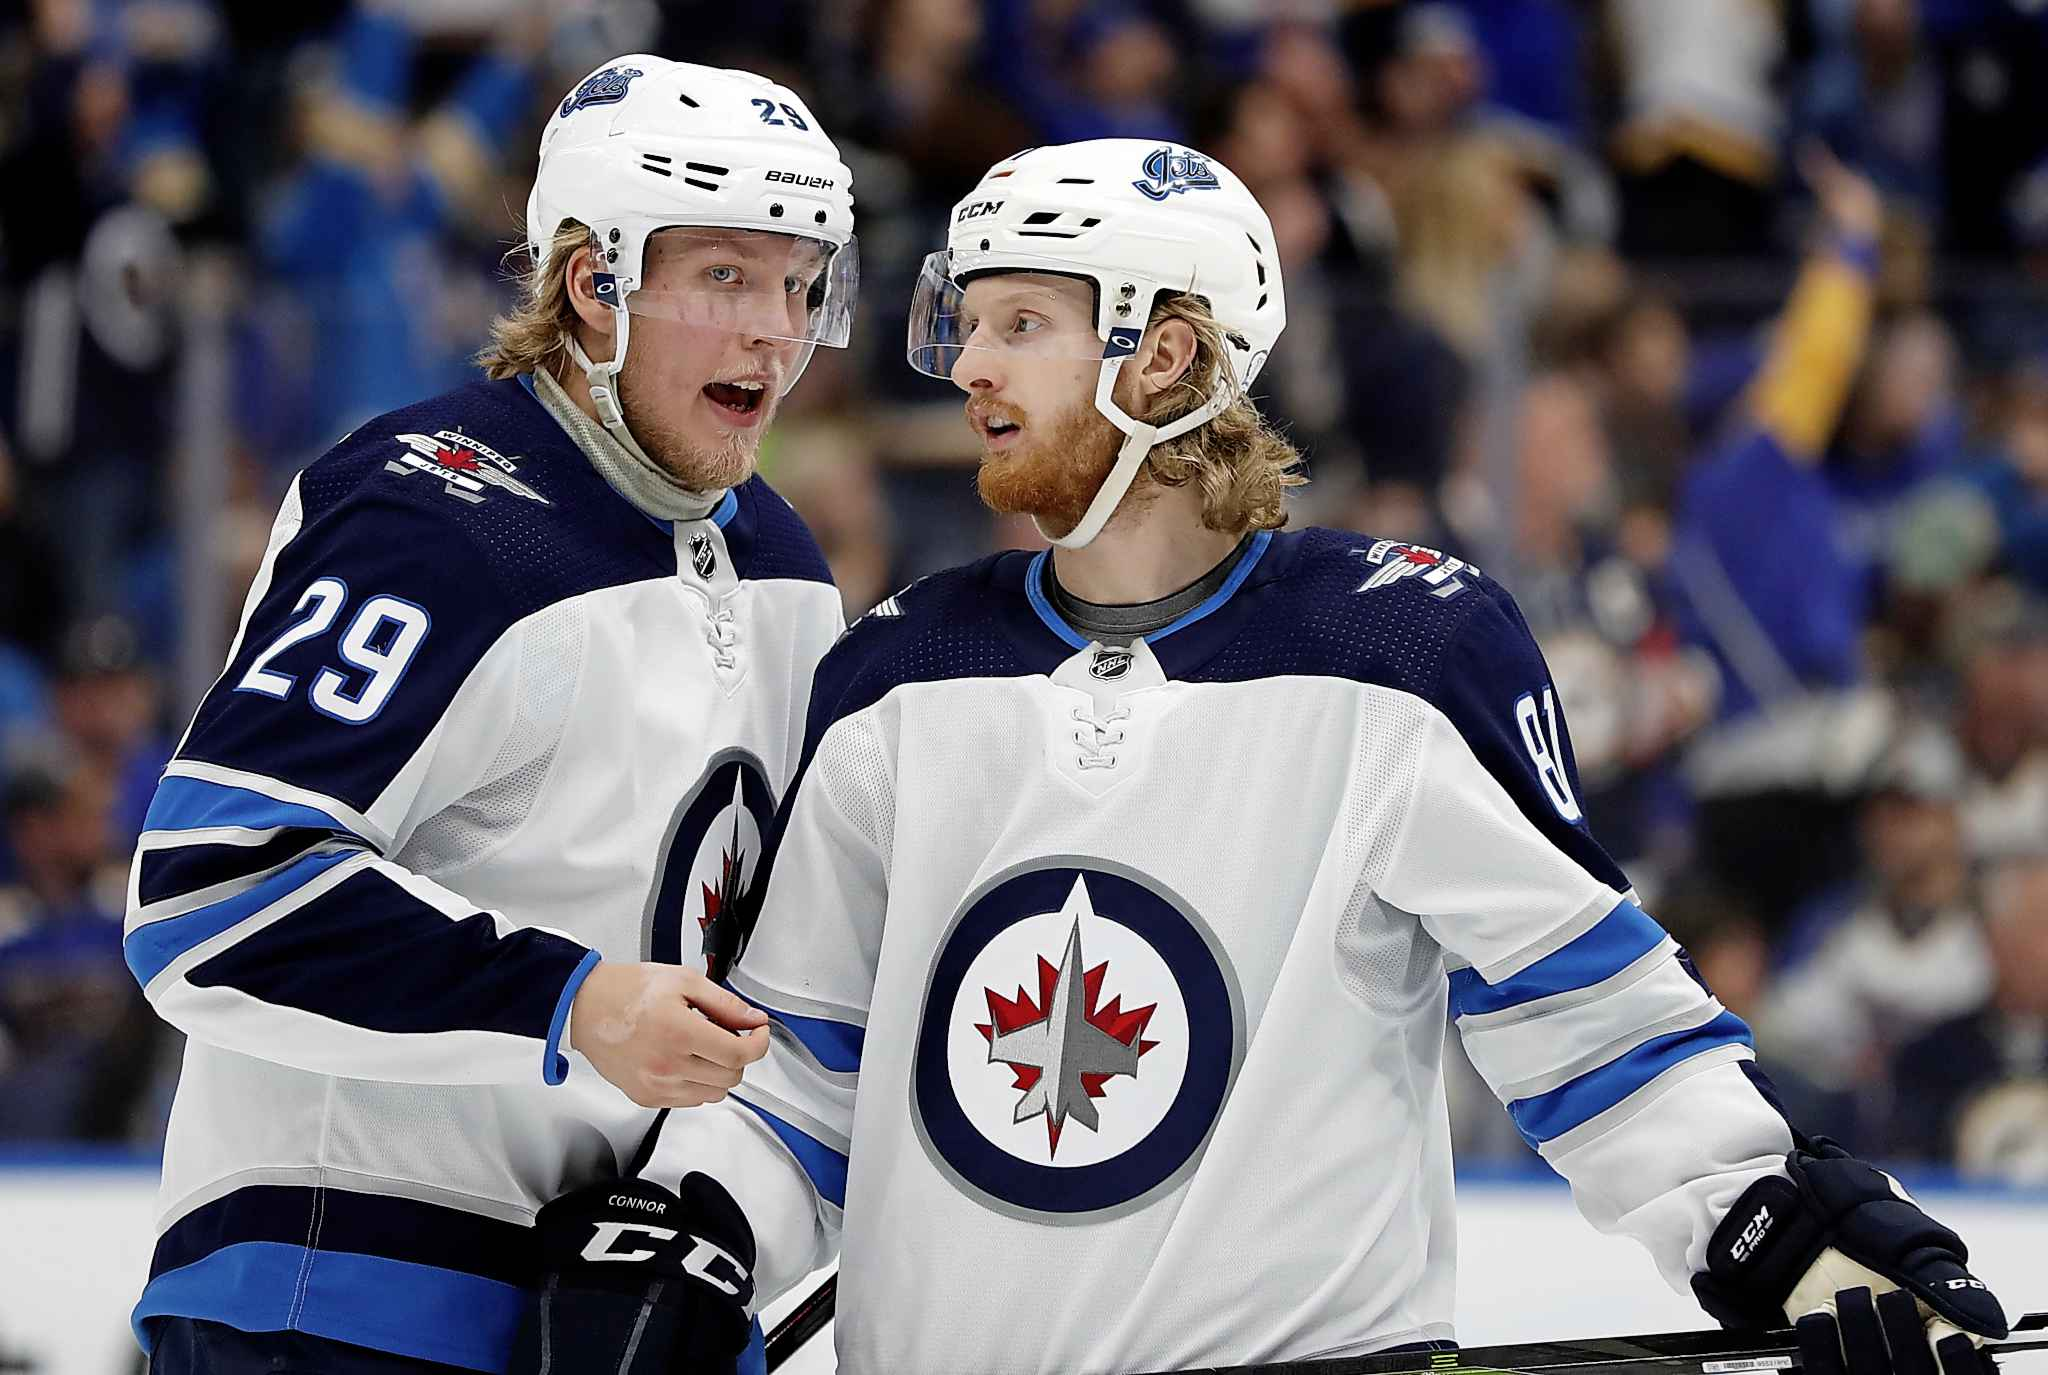 The Jets will need some new players on entry level contracts to perform like Patrik Laine (left) and Kyle Connor. (Jeff Roberson / Associated Press files)